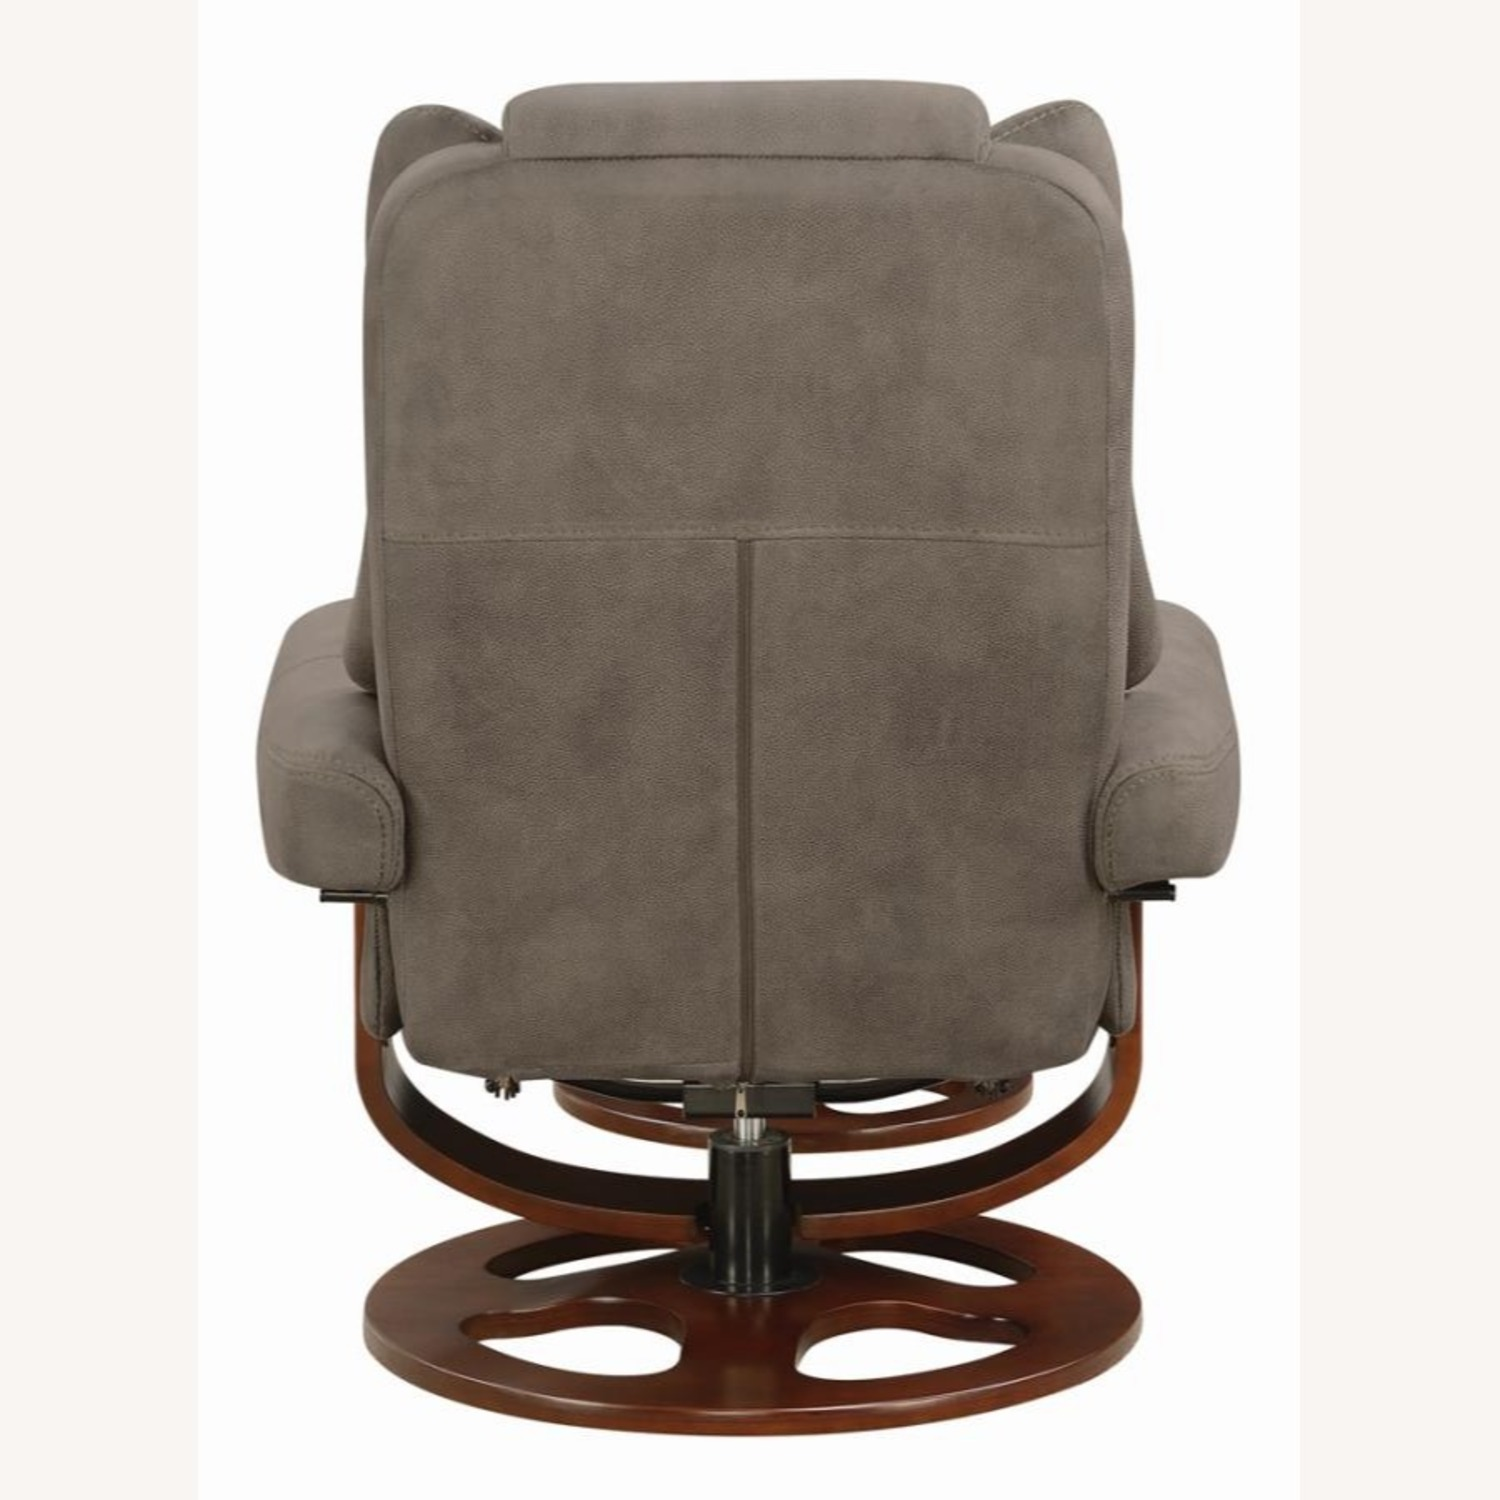 Recliner W/ Ottoman In 2-Tone Grey Faux Suede - image-4